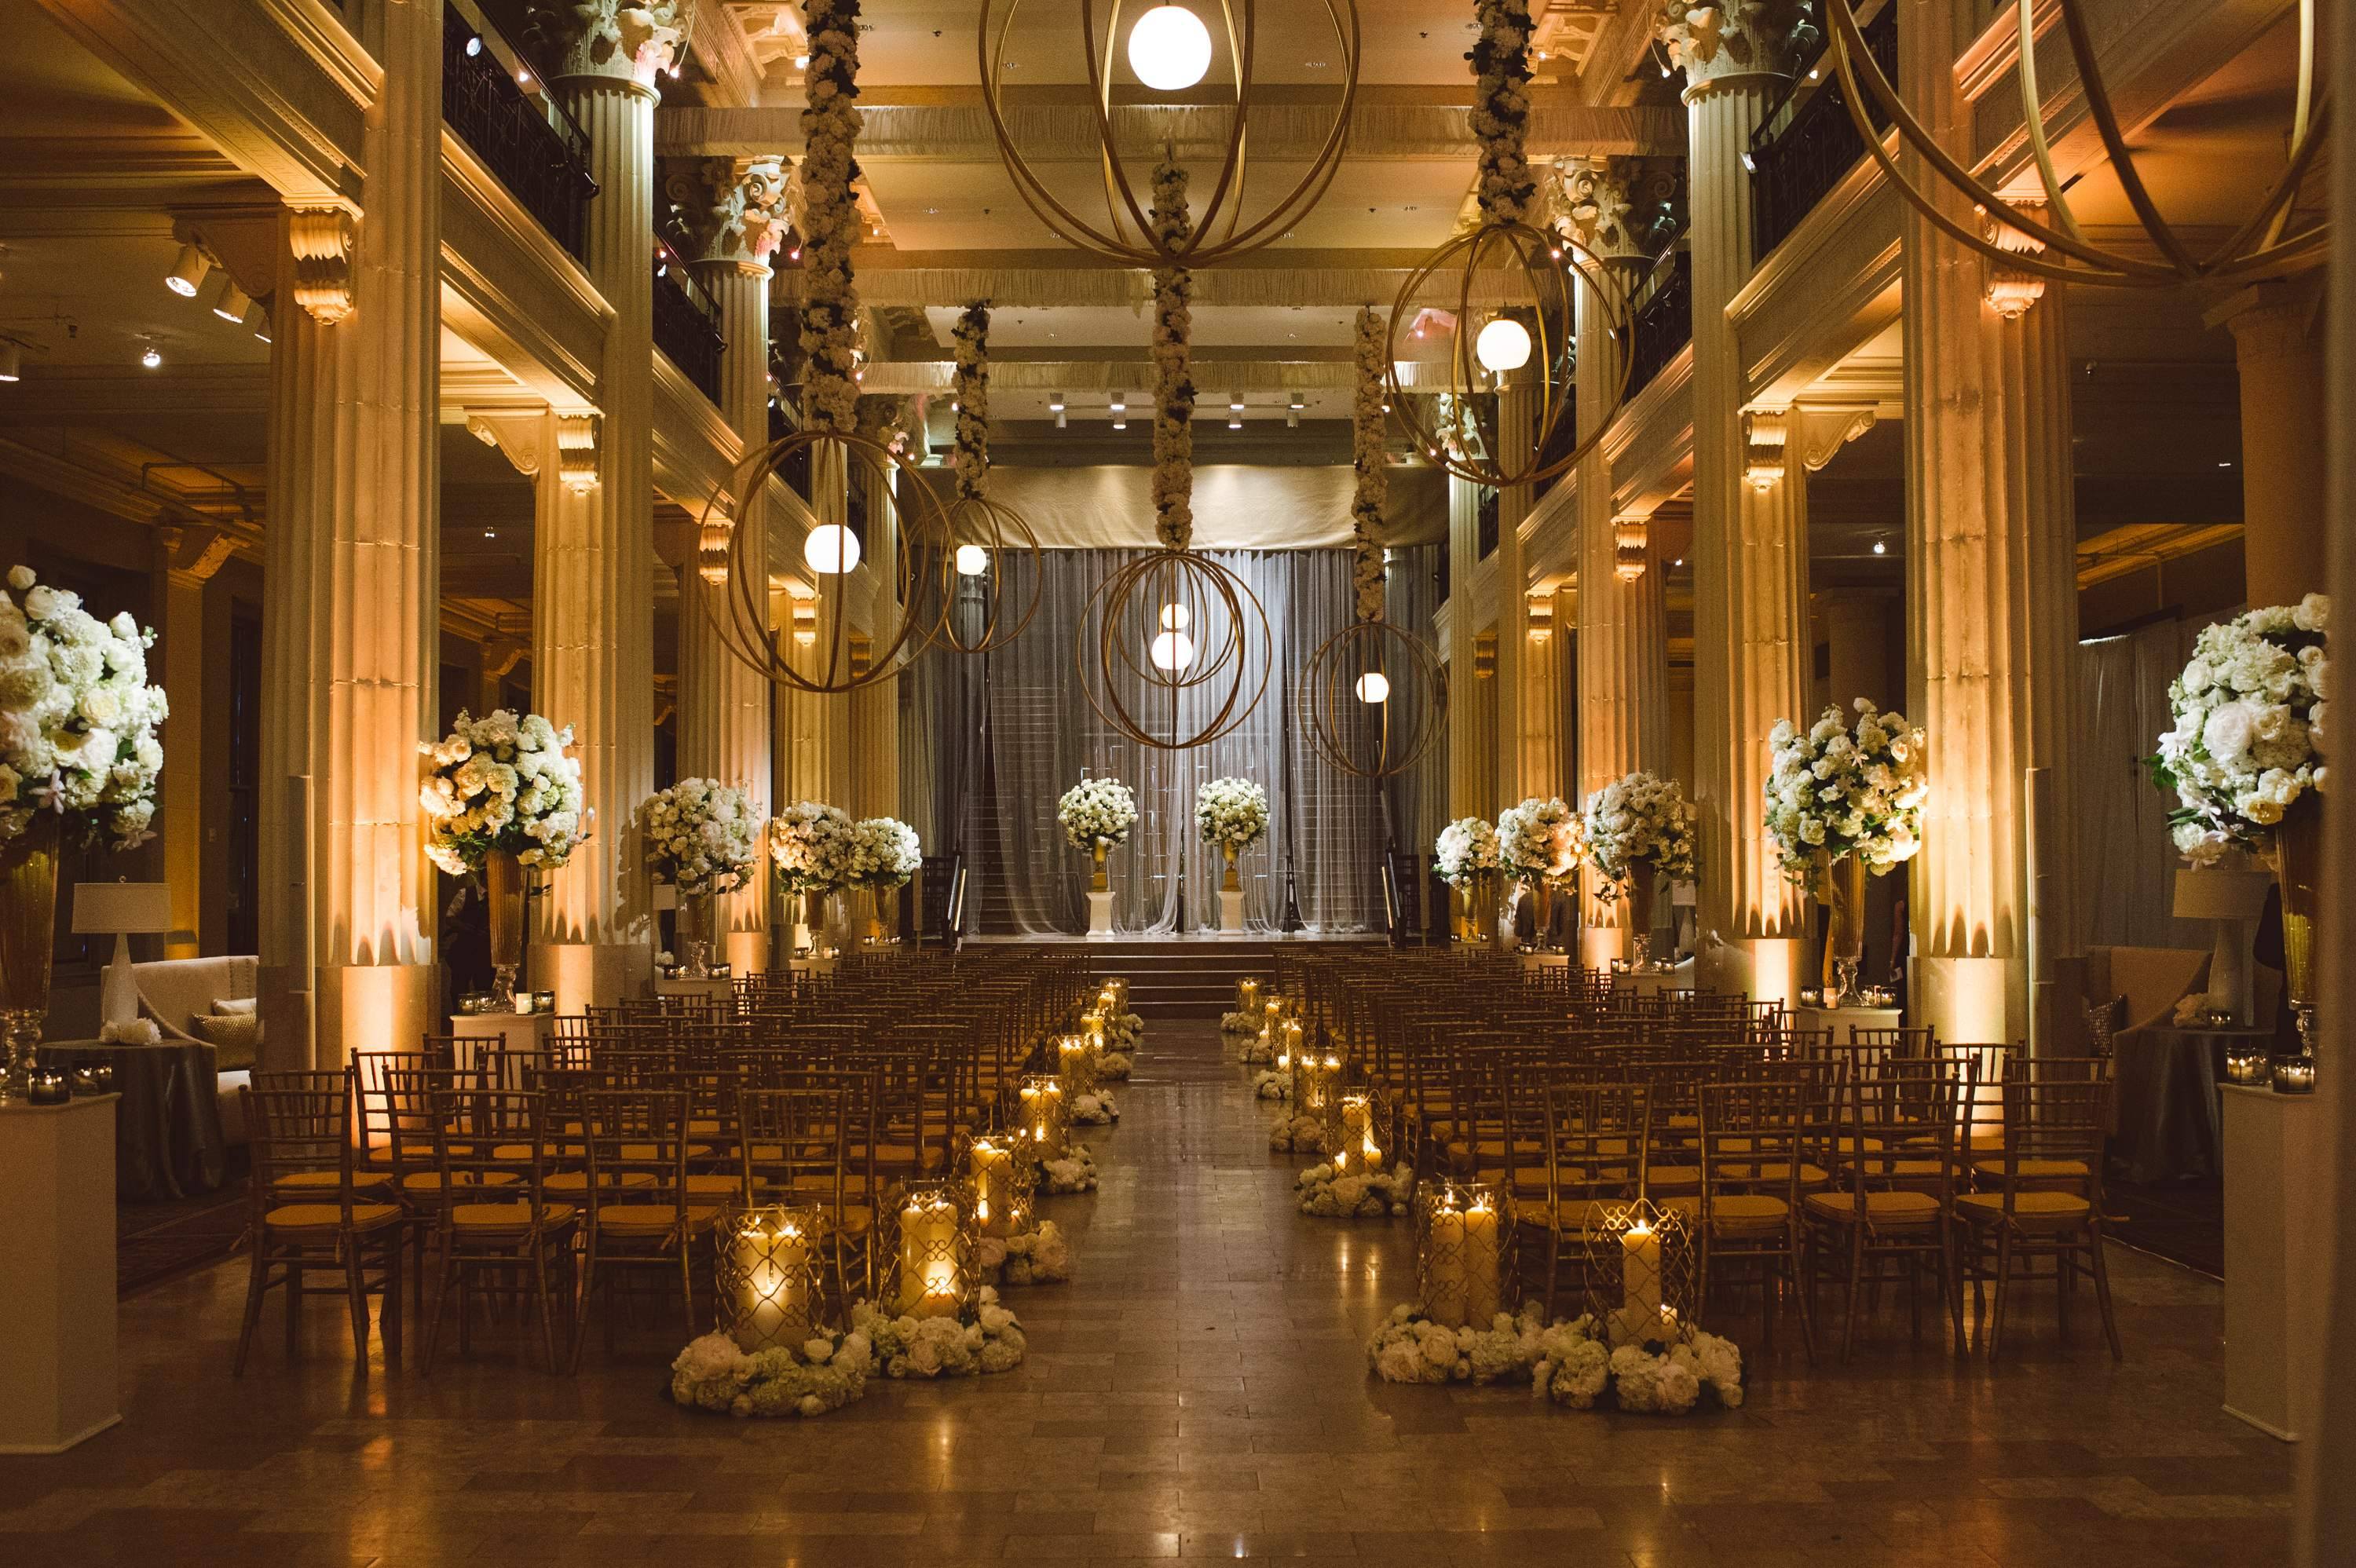 An Indoor Rustic Ceremony: Get The Cozy And Warm Winter Wedding Ceremony Look From